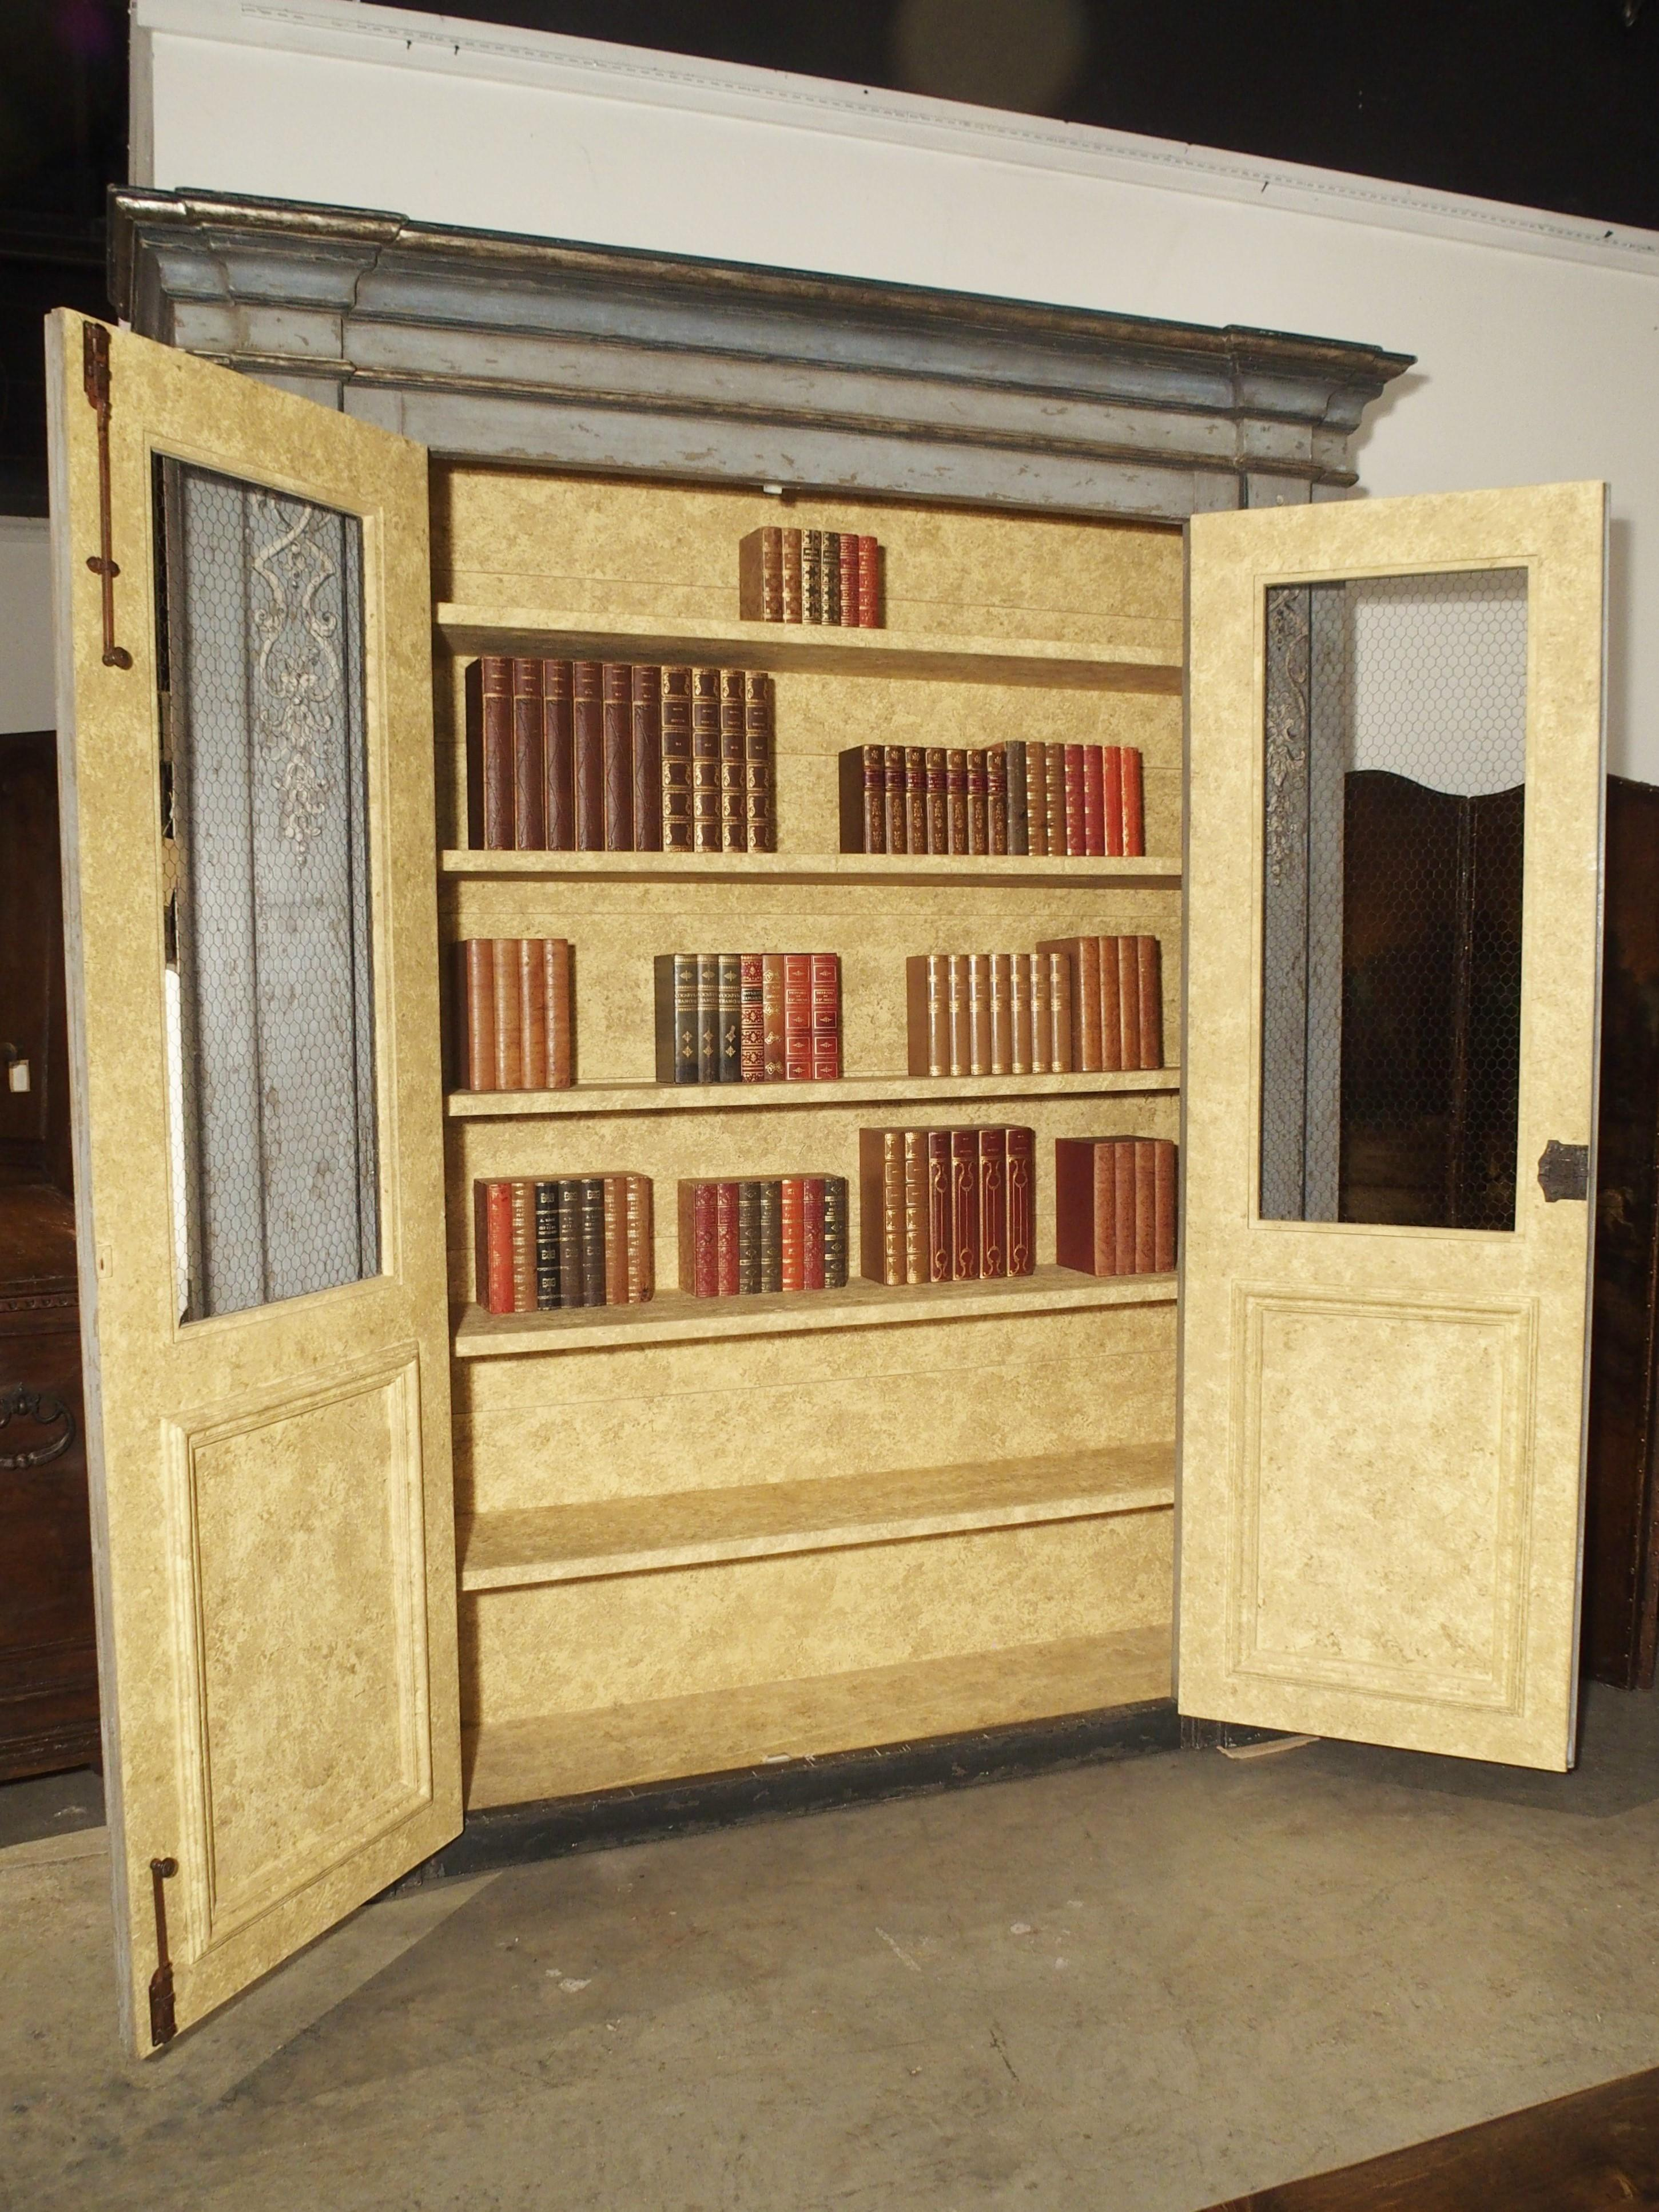 Painted Bookcase From Northern Italy 20th Century